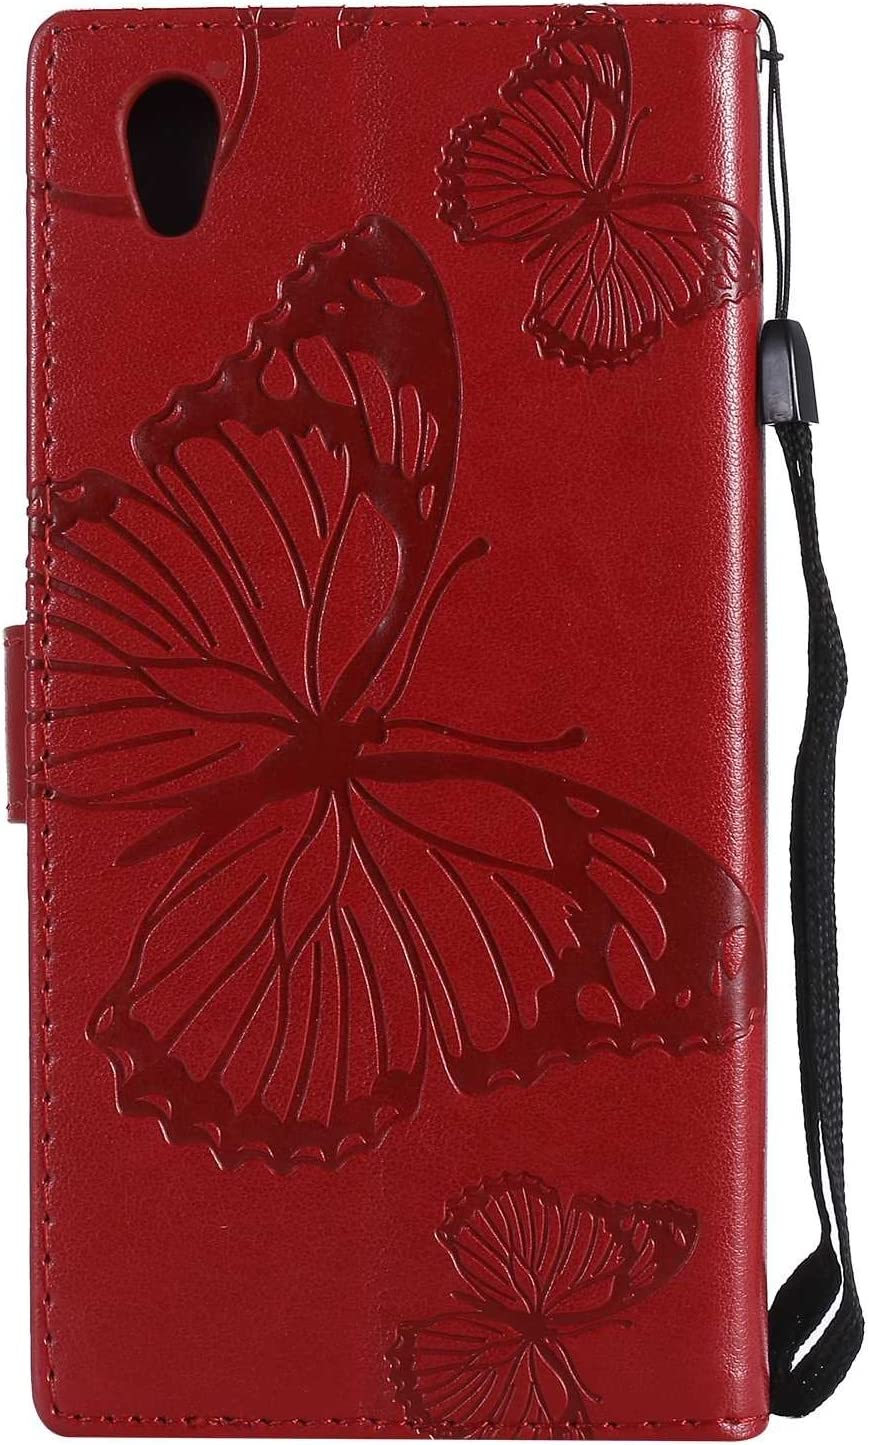 Card//ID Holder Wallet Flip Case Drop Proof For Sony Xperia L1 // E6 Case -Red High Quality Pu Leather Sony Xperia L1 // E6 Case Cover Casake